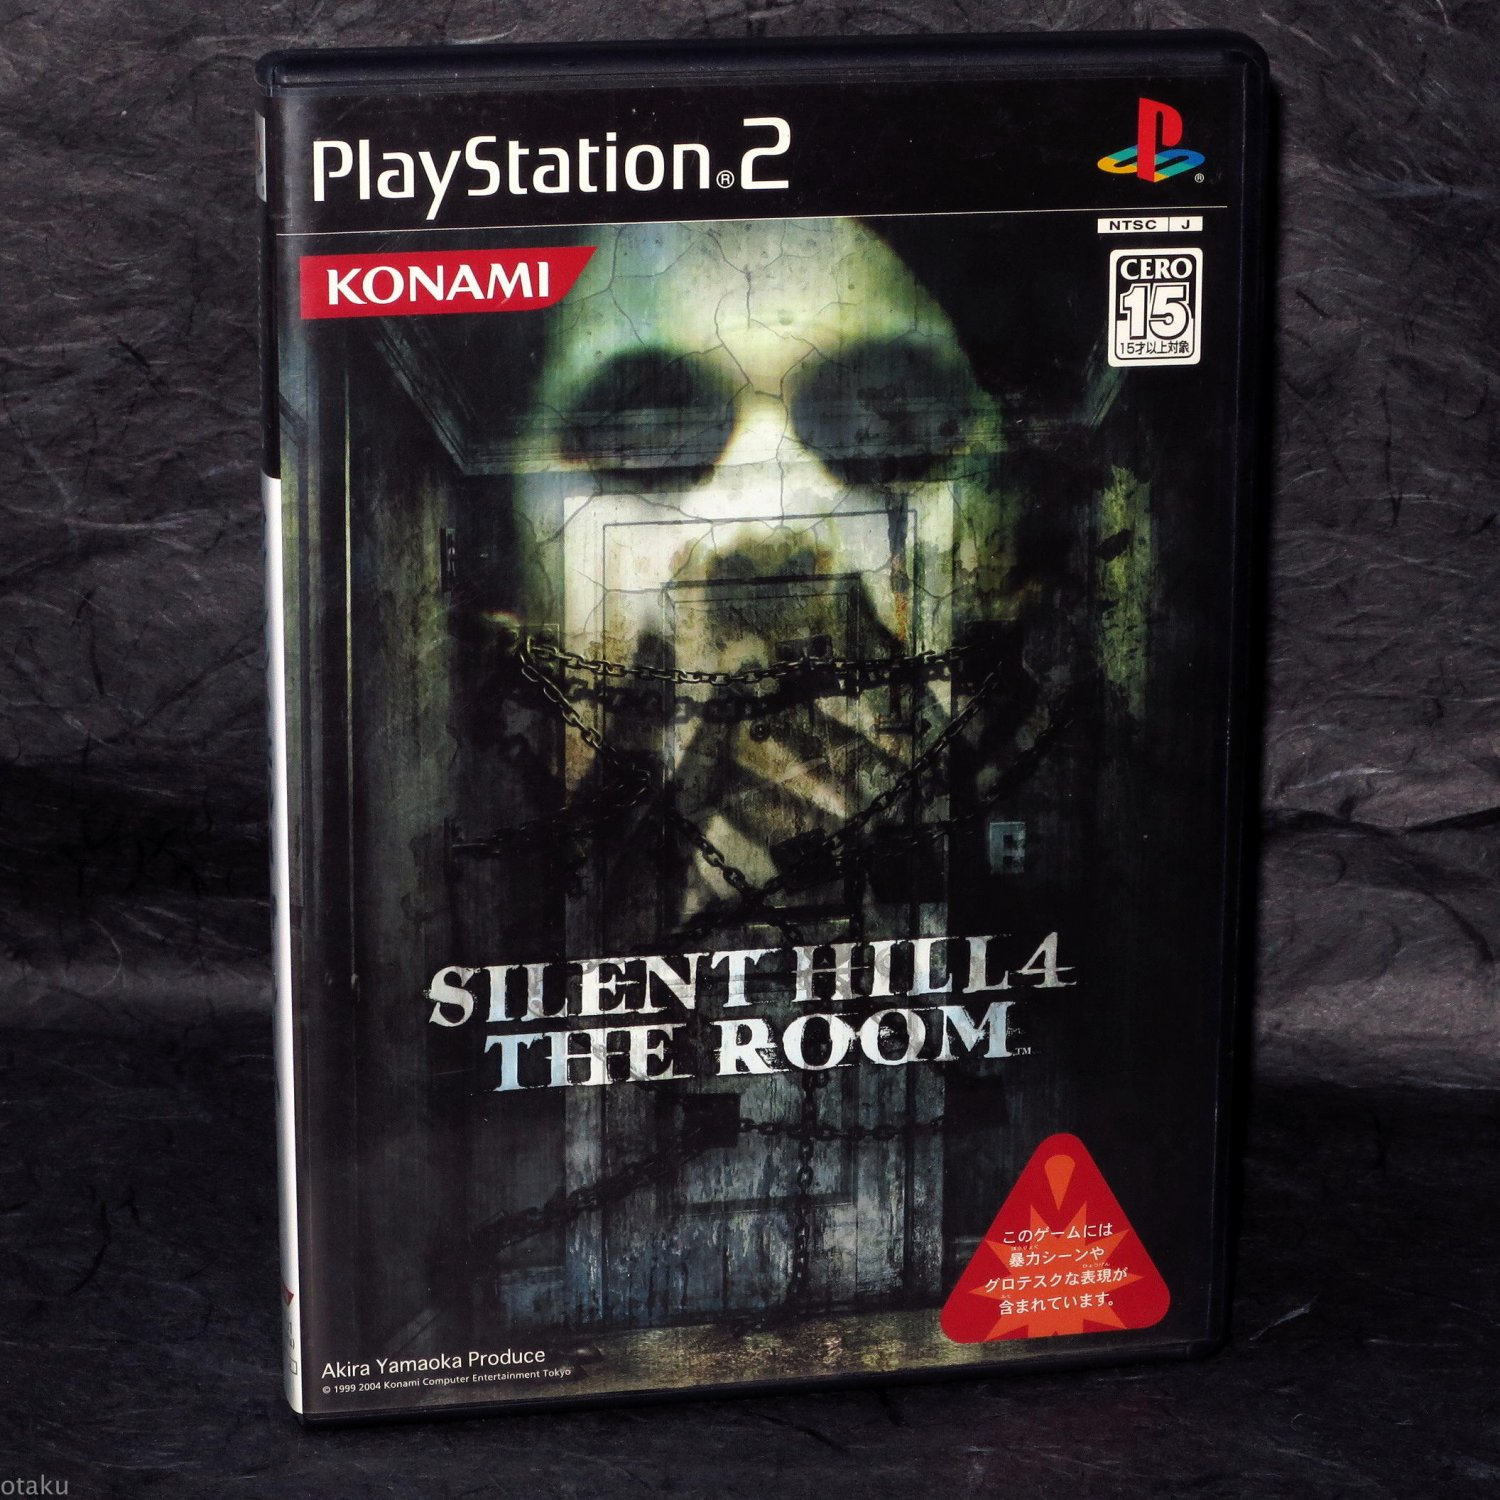 Silent Hill 4 The Room PS2 Japan Action Horror Konami Game